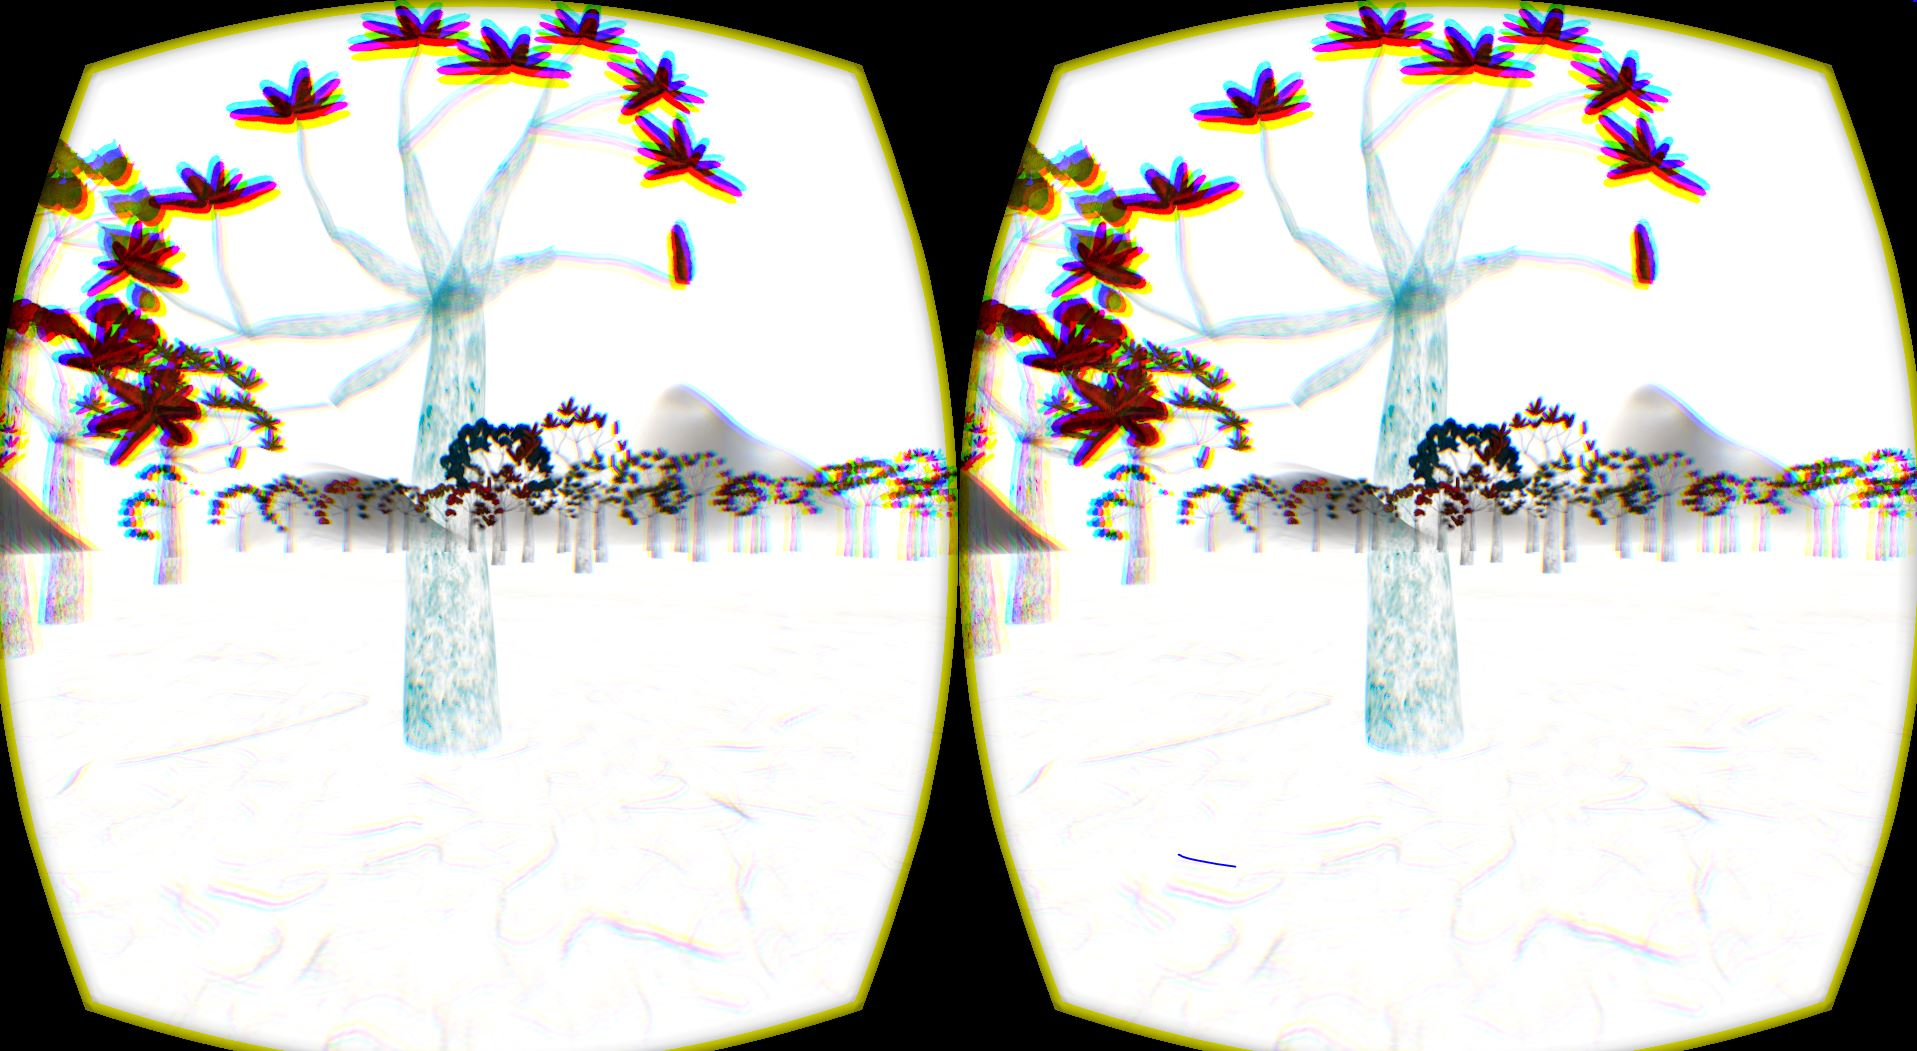 VR Poetry